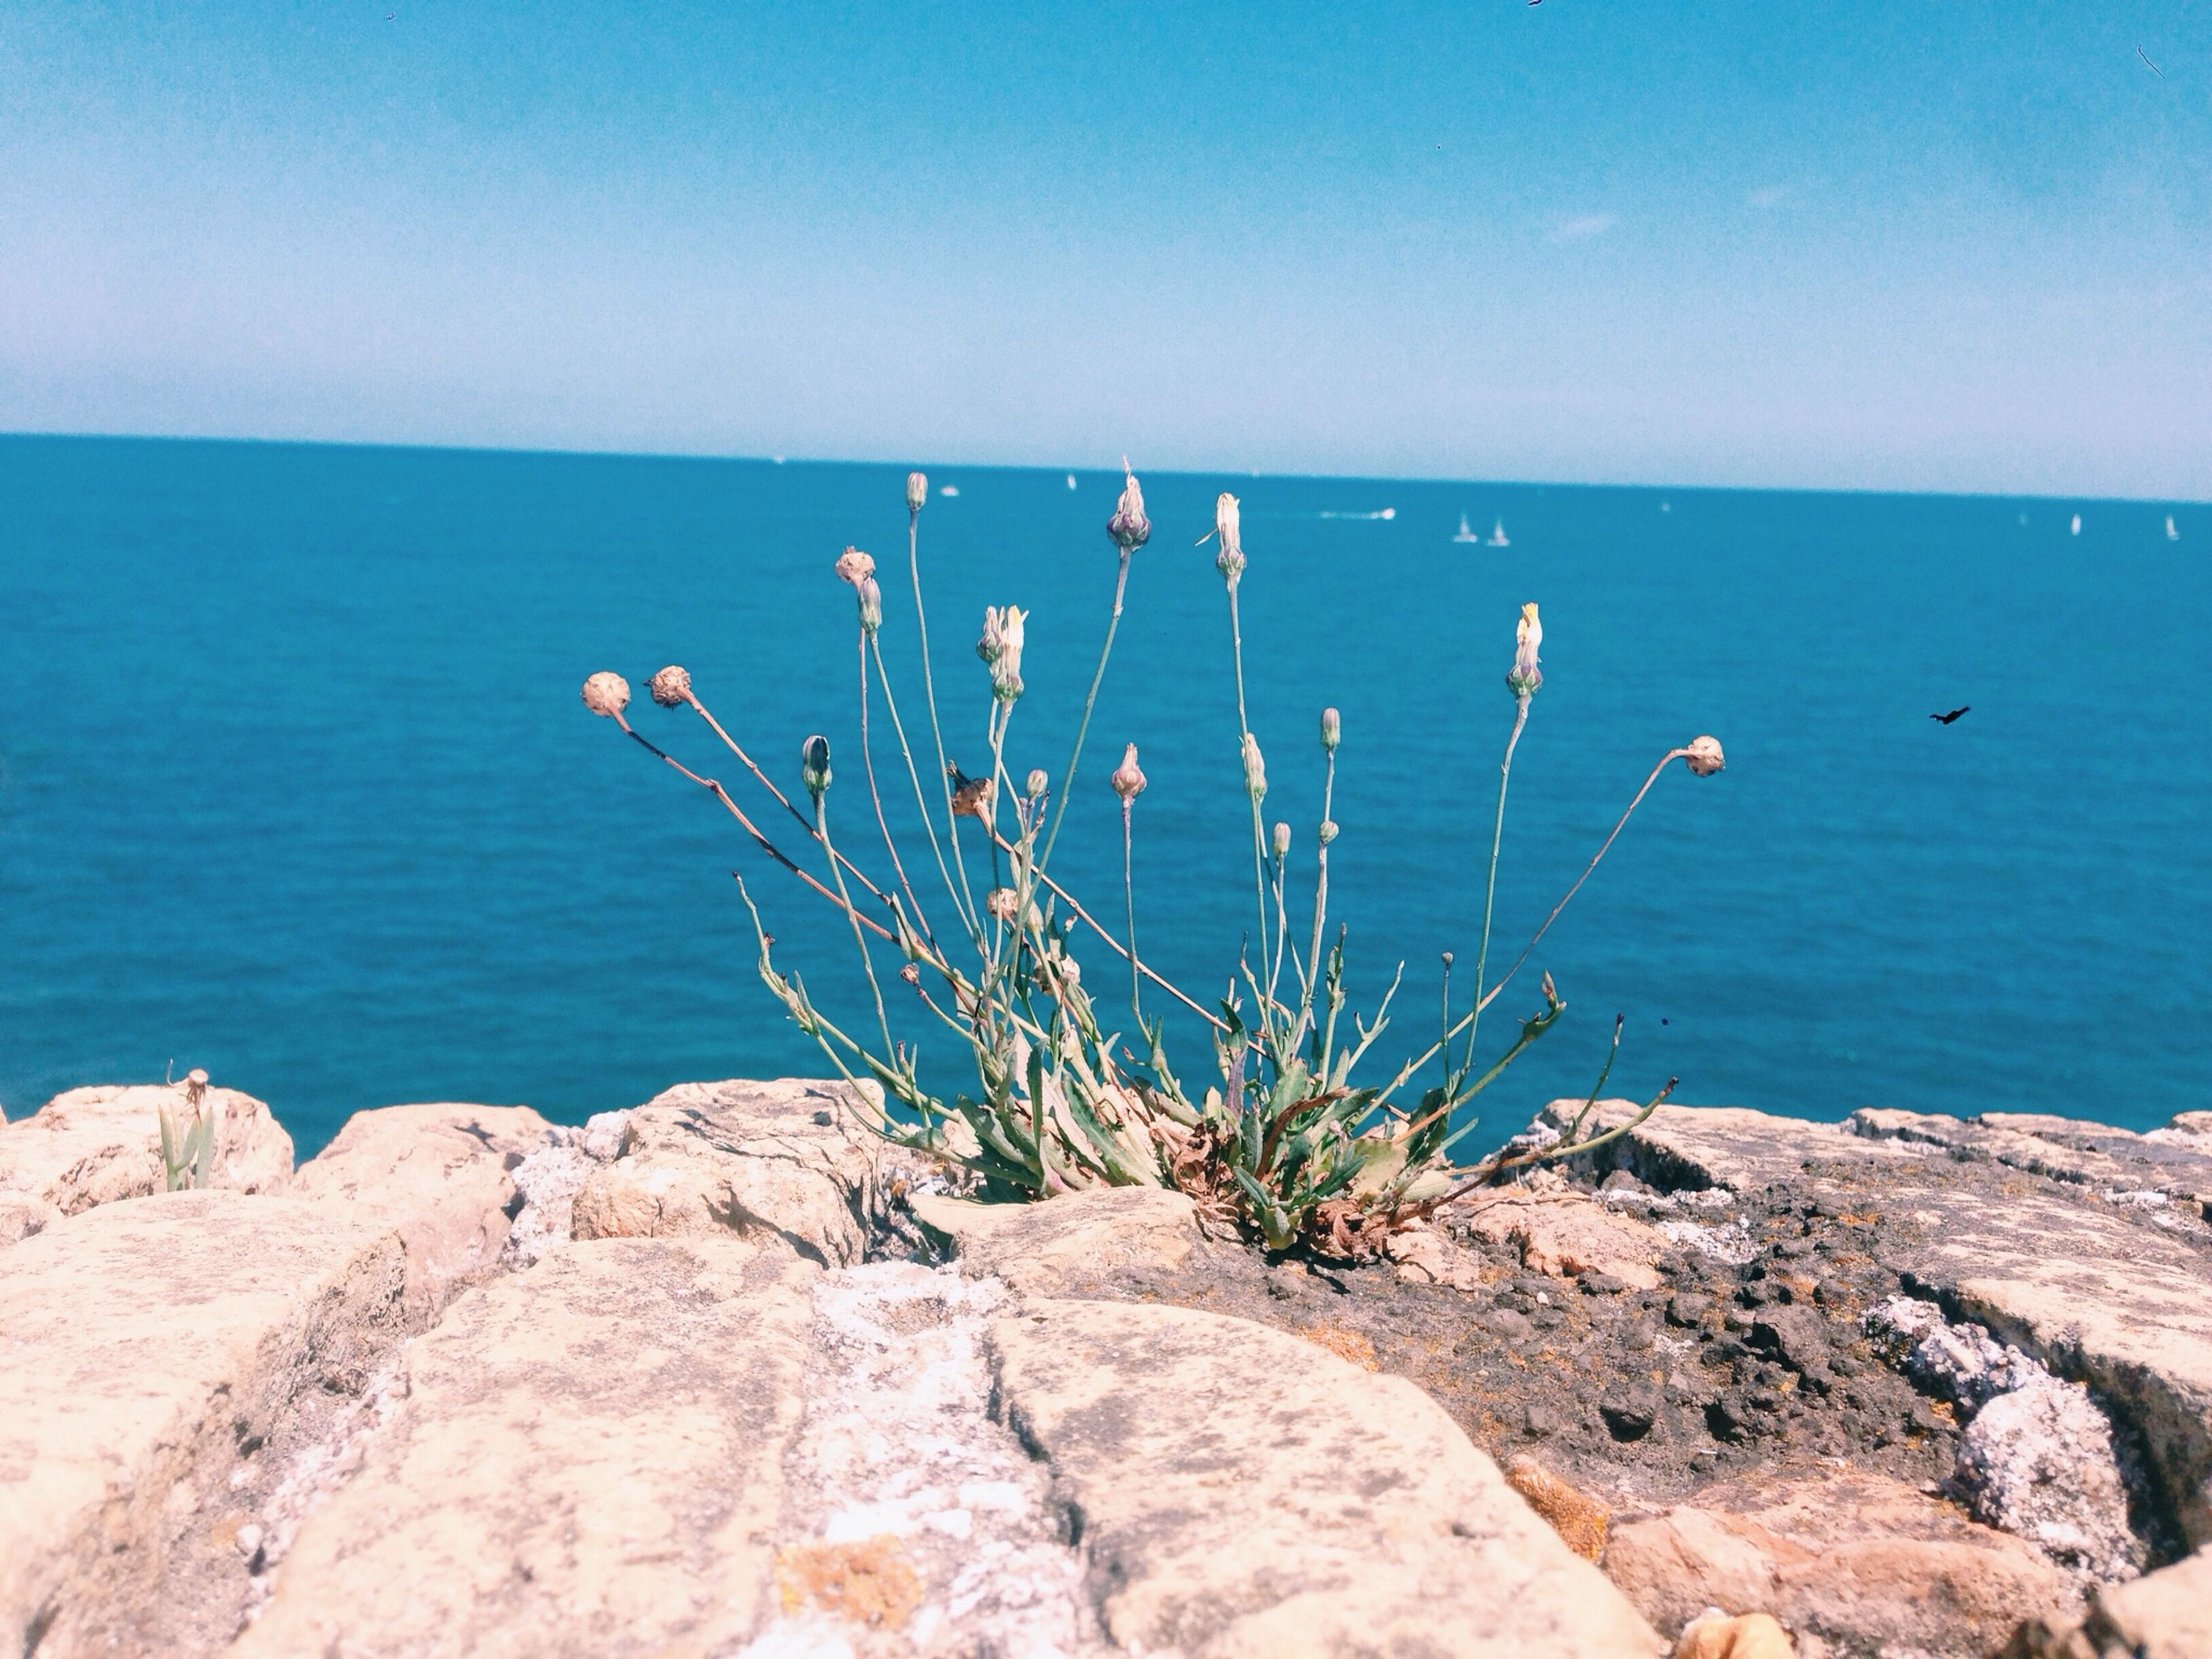 sea, water, horizon over water, blue, beauty in nature, tranquility, nature, plant, tranquil scene, scenics, rock - object, growth, flower, clear sky, rock, day, idyllic, outdoors, sky, rock formation